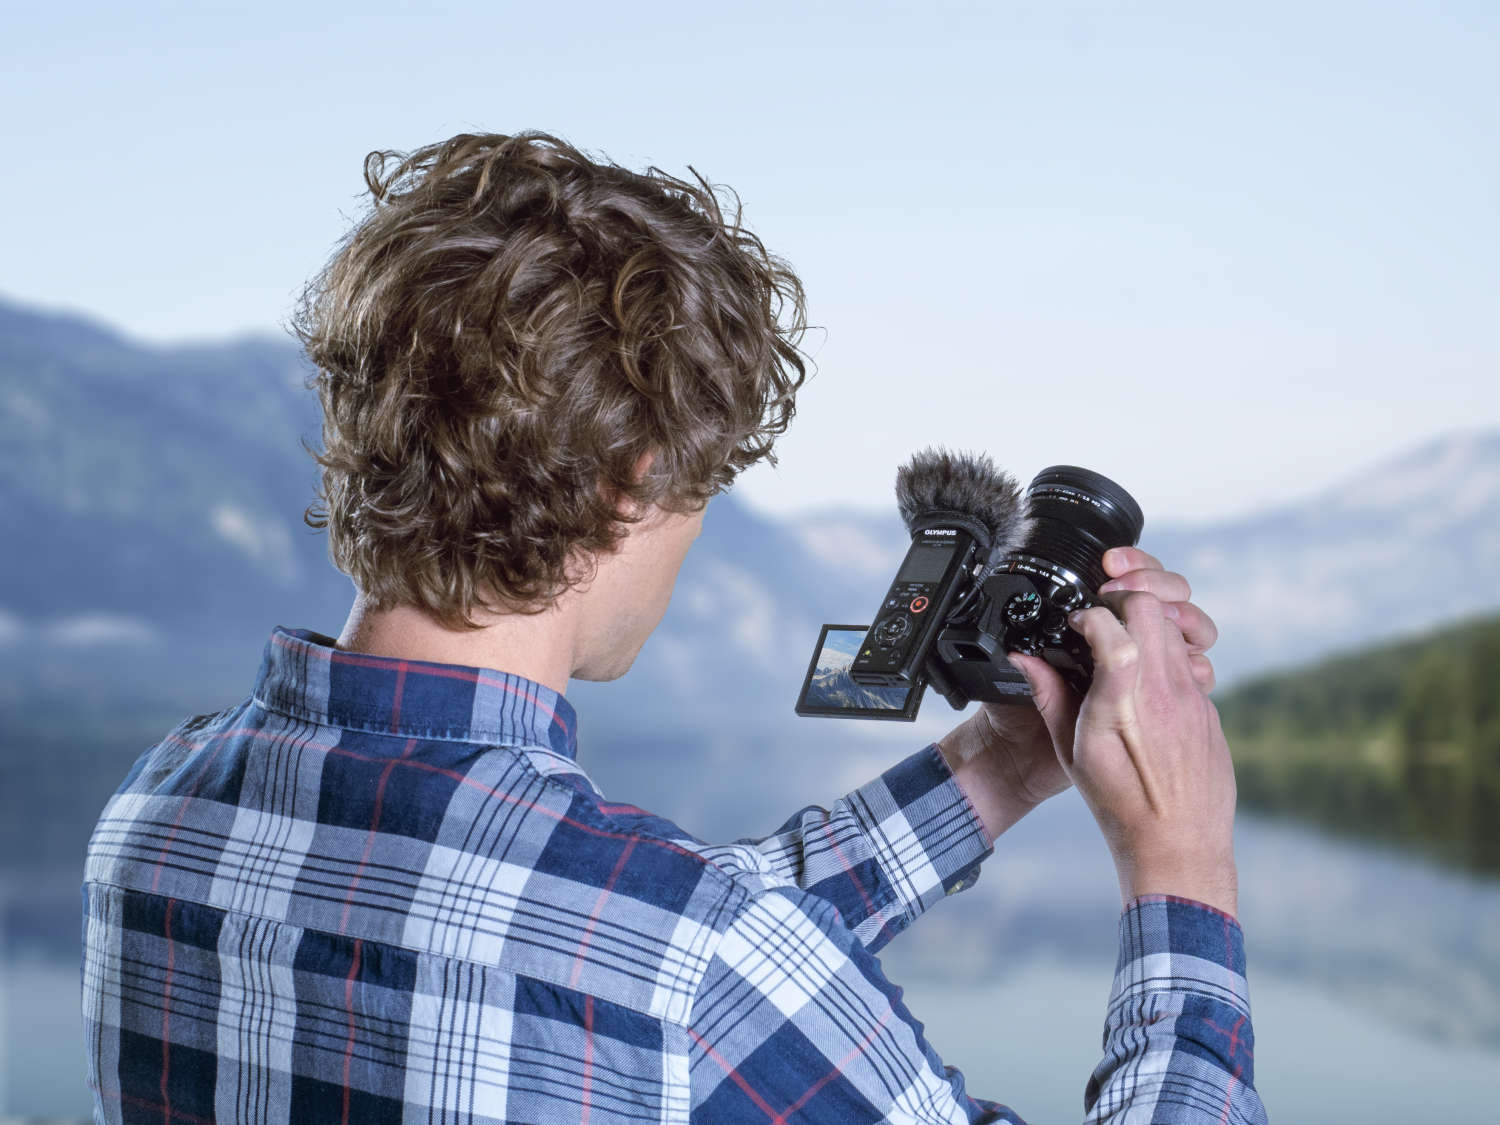 Neue Olympus Audio-Recorder-Kits für Video, Interview und Podcasting